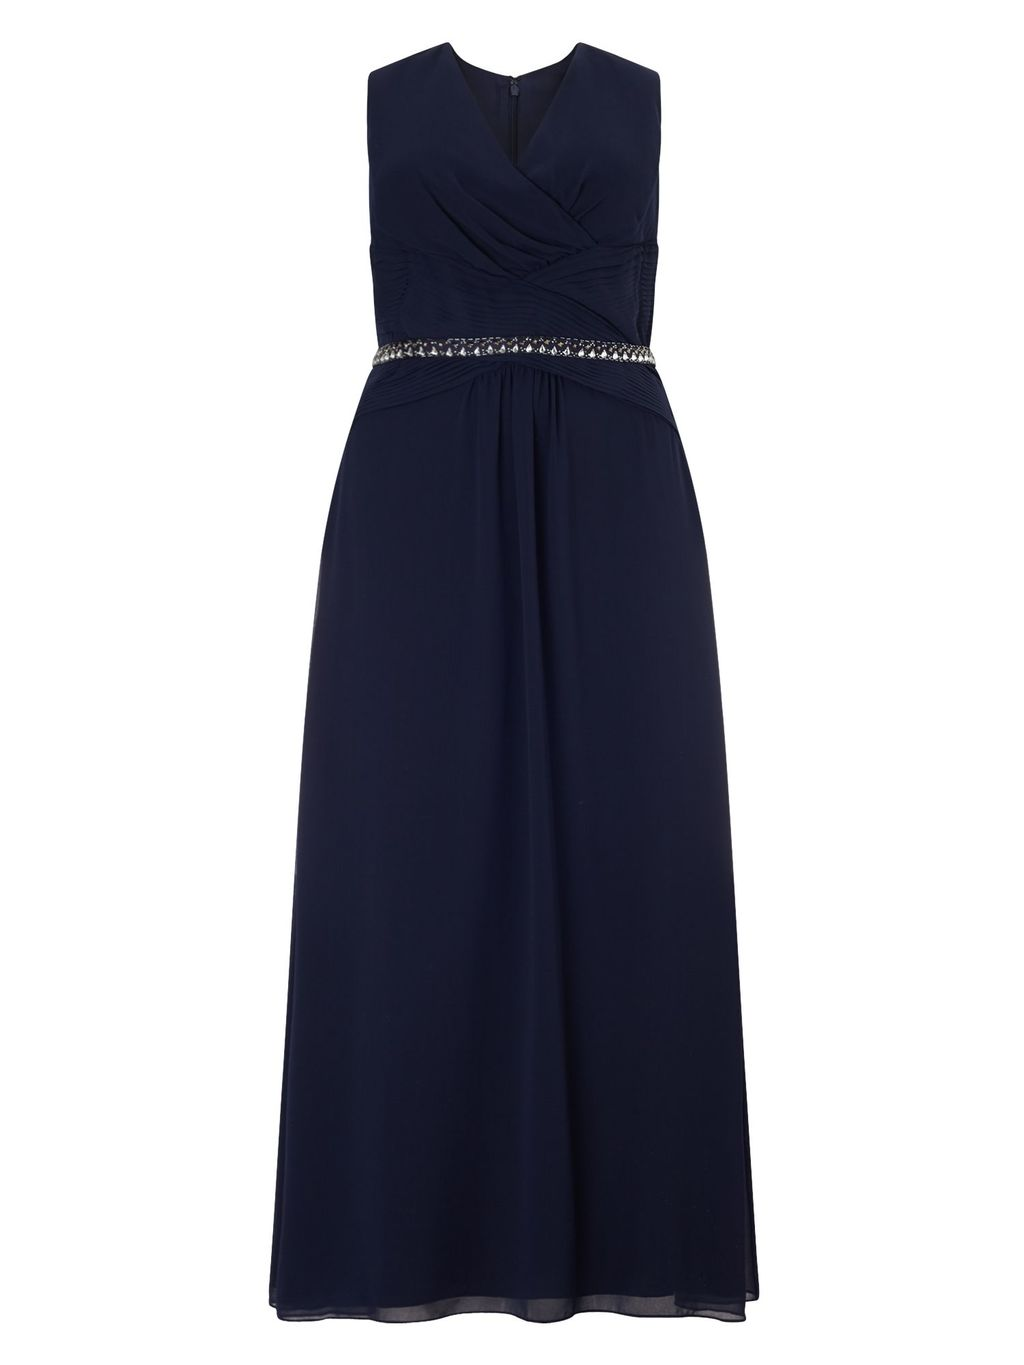 Jupiter Dress, Blue - neckline: v-neck; pattern: plain; sleeve style: sleeveless; style: maxi dress; length: ankle length; waist detail: embellishment at waist/feature waistband; predominant colour: navy; fit: soft a-line; fibres: polyester/polyamide - 100%; occasions: occasion; sleeve length: sleeveless; texture group: sheer fabrics/chiffon/organza etc.; pattern type: fabric; embellishment: crystals/glass; season: s/s 2016; wardrobe: event